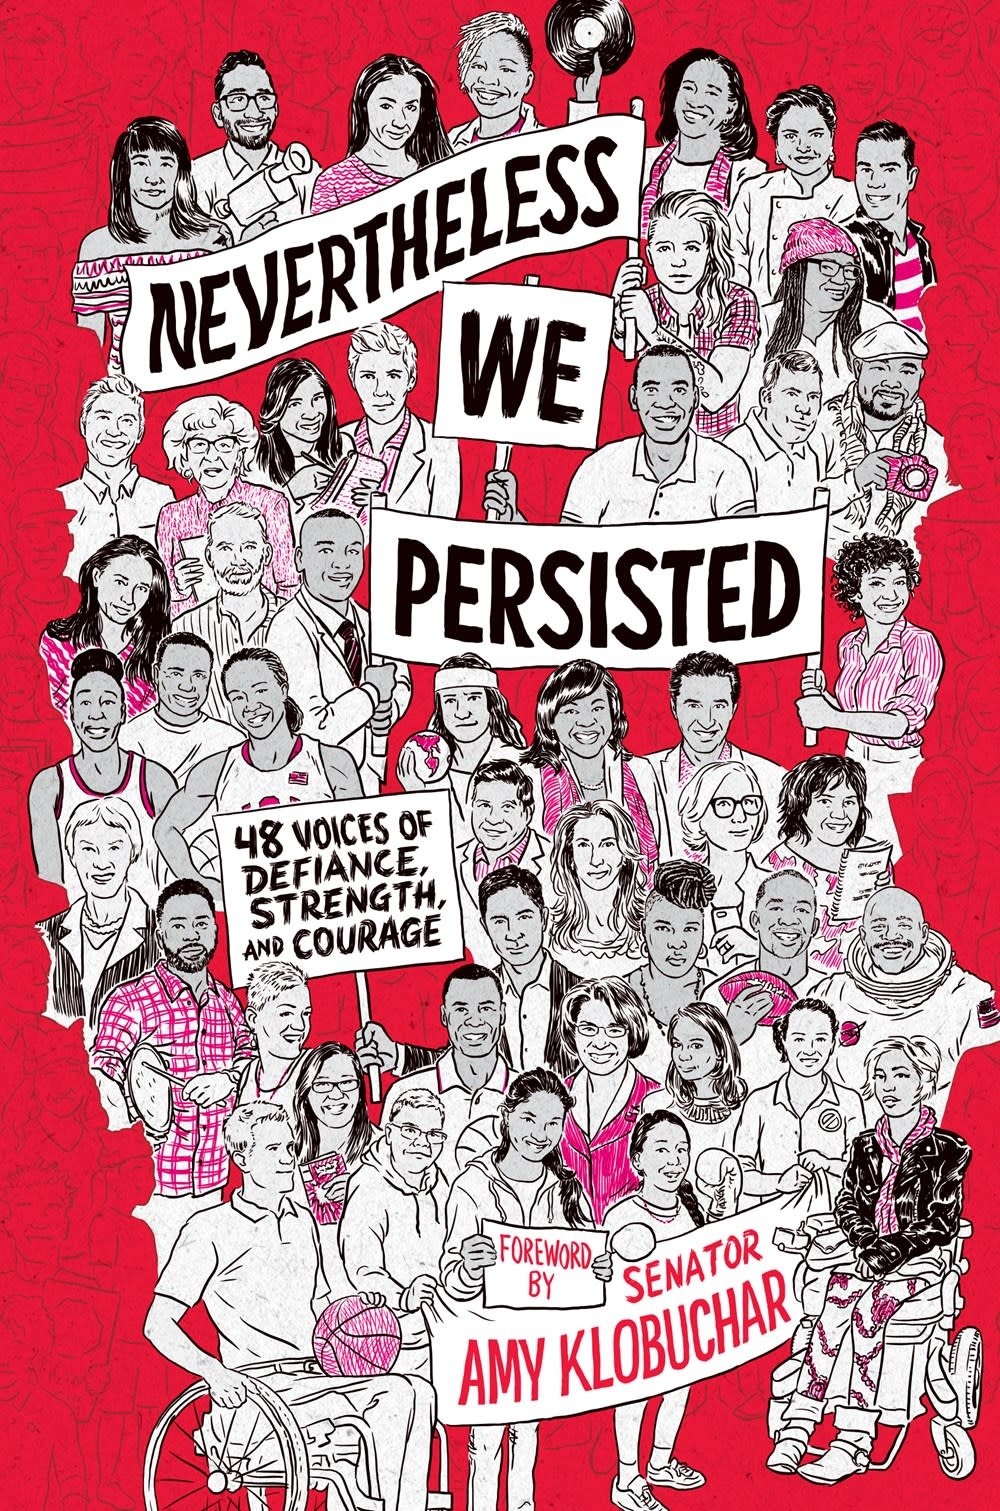 Ember Nevertheless, We Persisted: 48 Voices of Defiance...